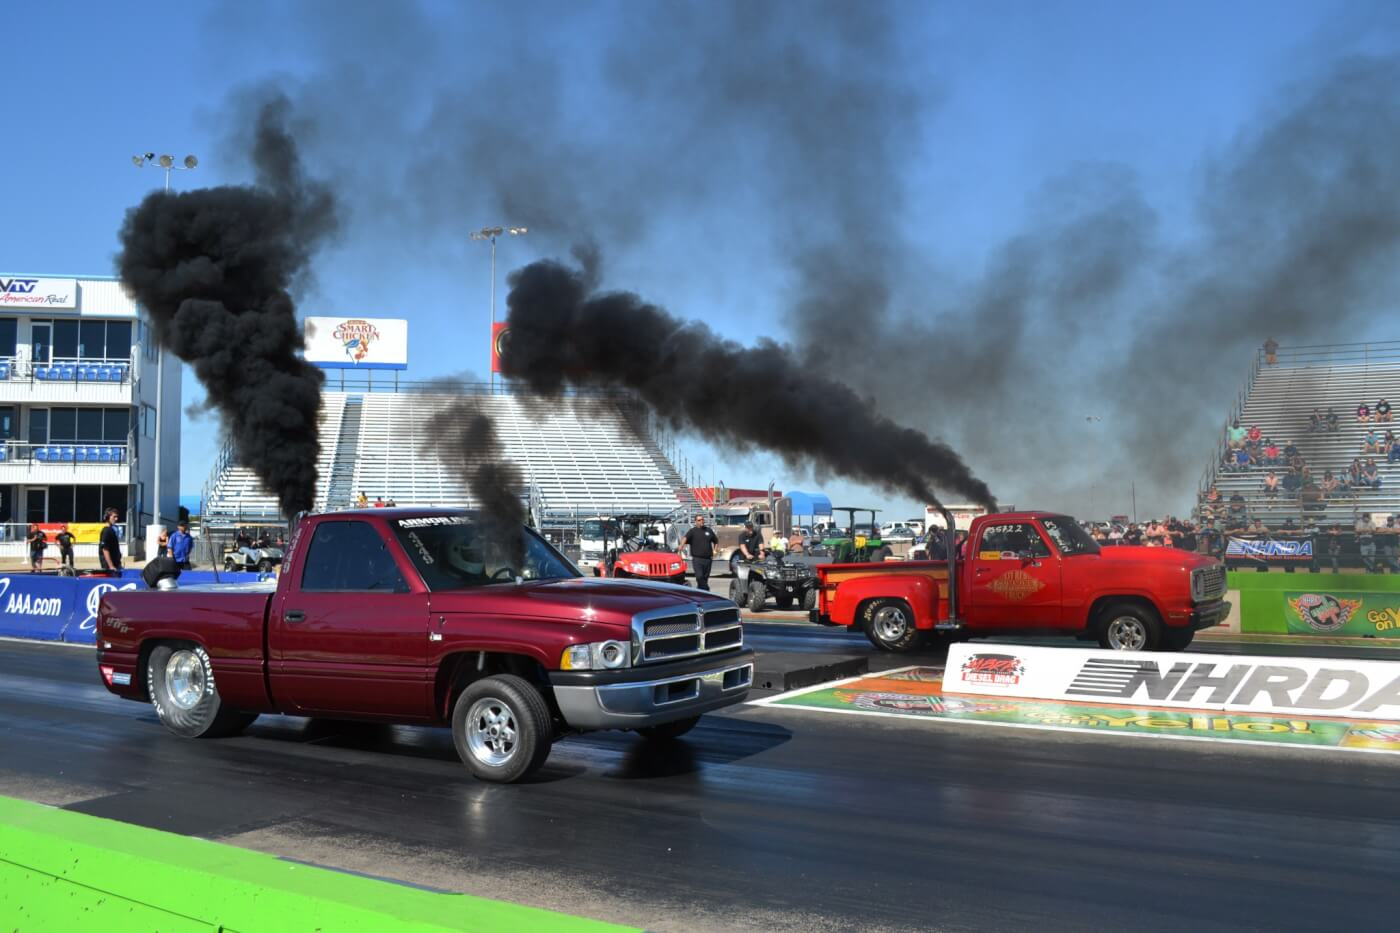 The Armor Inc. Pro Street drag truck (near lane) was one team that really kicked off the drag racing action, with a strong 8.95-second effort at 157 mph. The back-halfed Dodge features a common-rail Cummins for power.